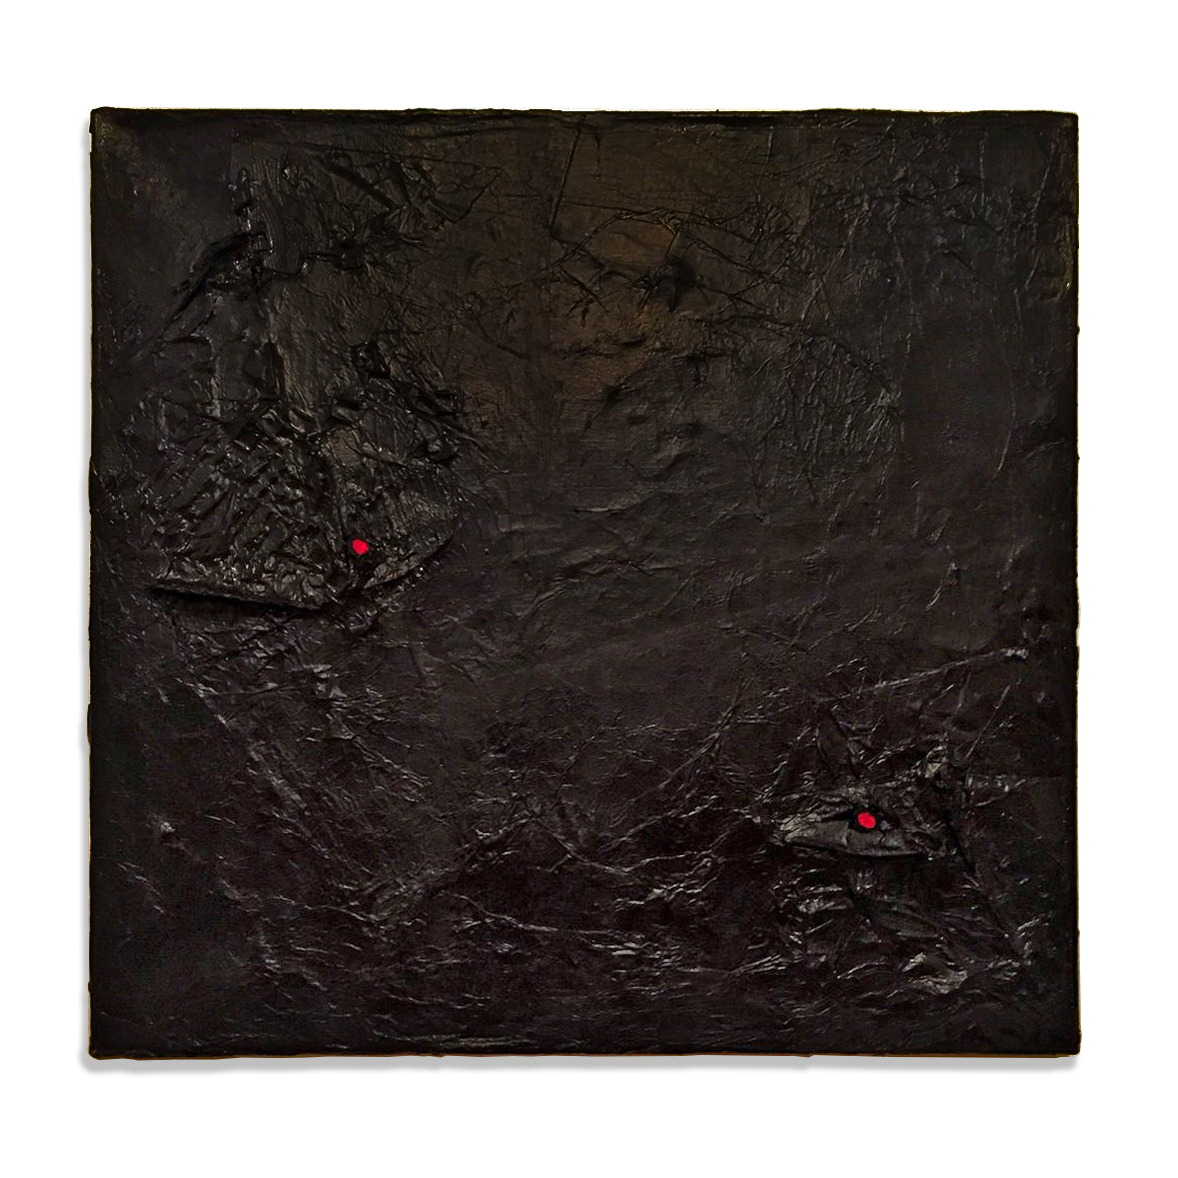 "Separate Ways (Textural Black with Two Red Nodes), 2015, acrylic, paper, twine, staples, and metal on canvas, 20"" x 21"""